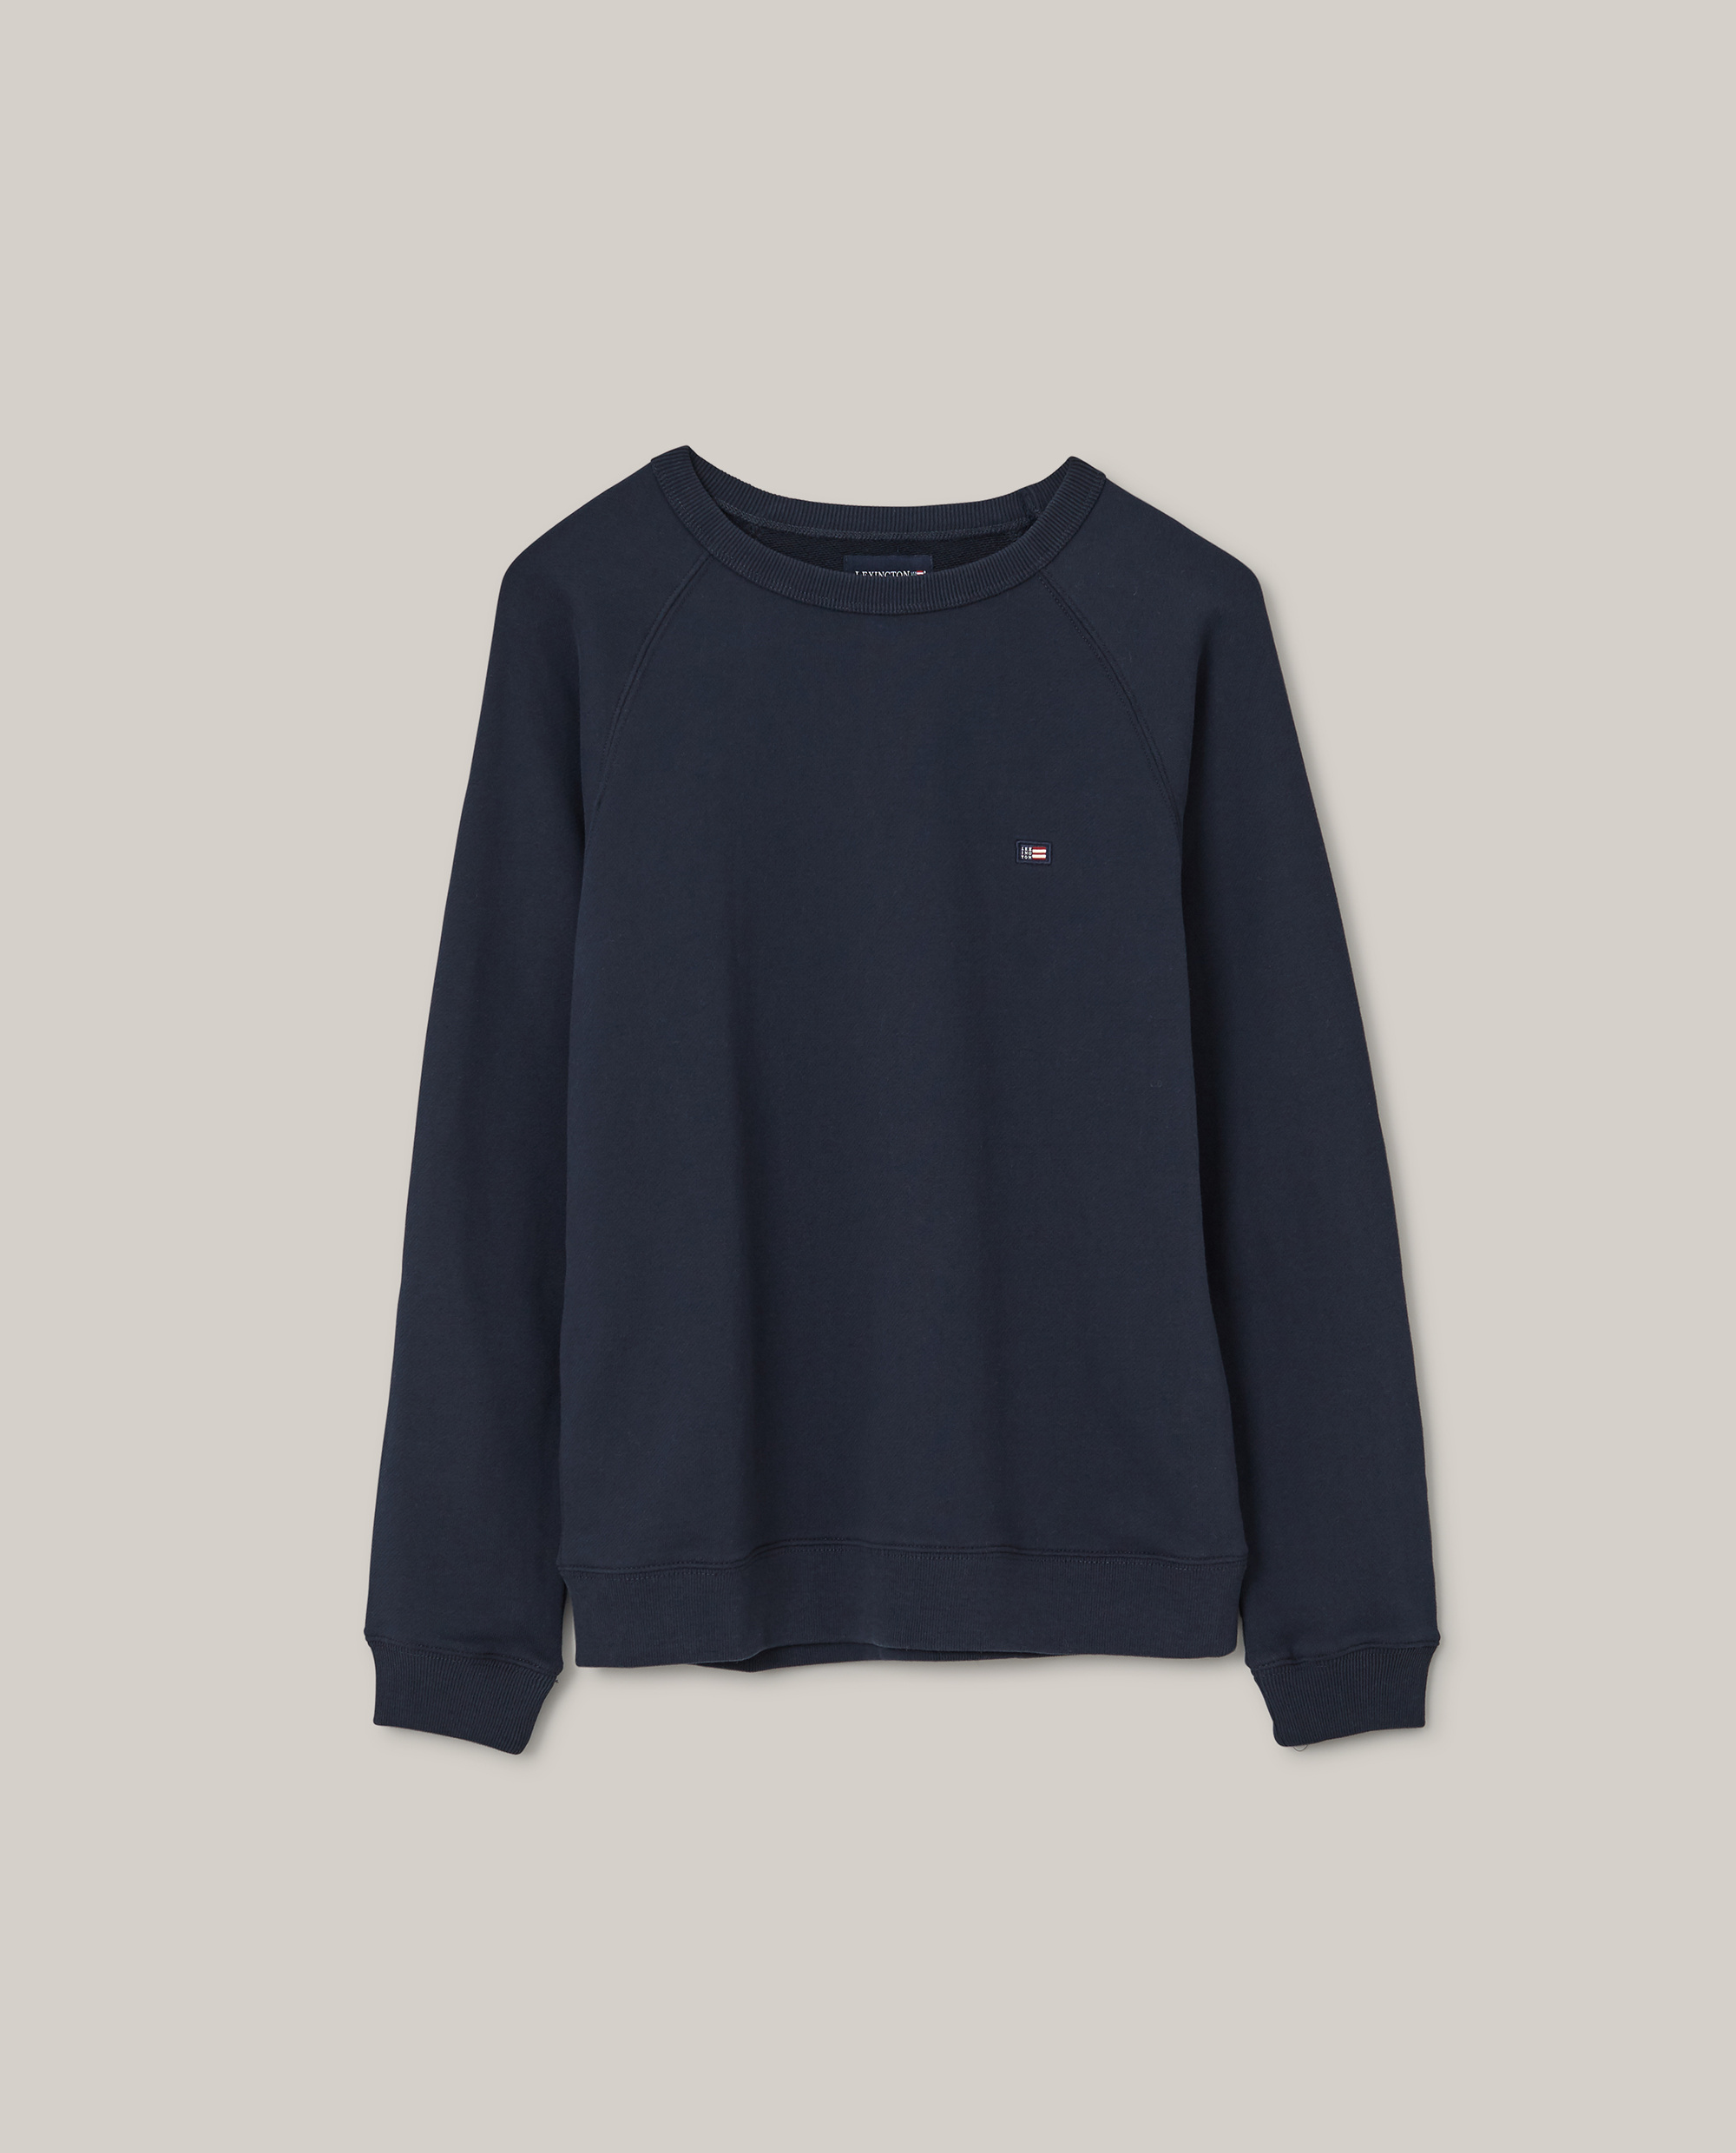 Nina Sweatshirt, Dark Blue